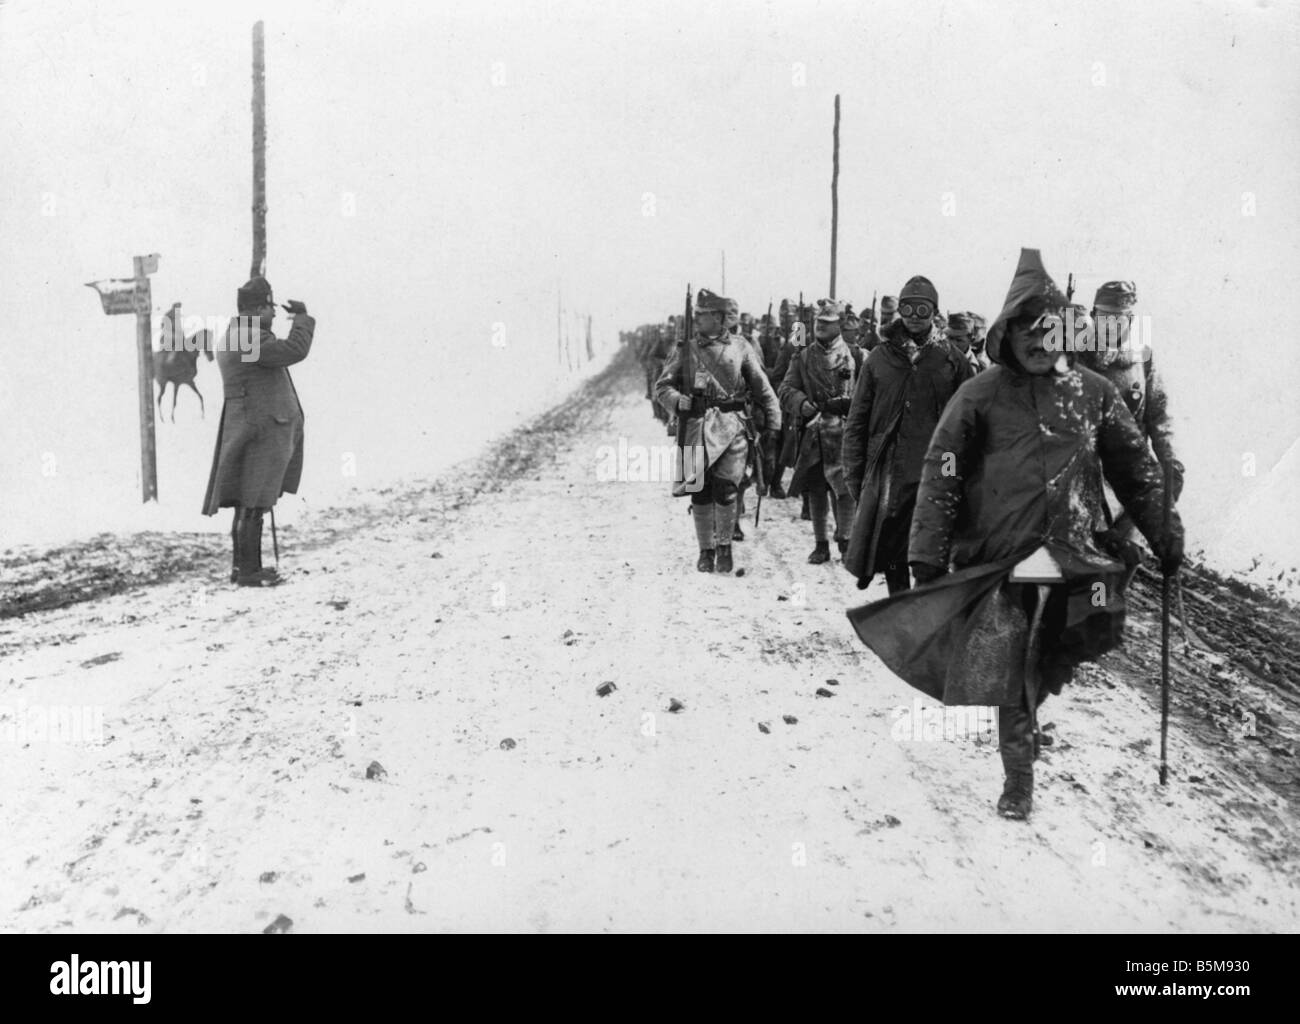 1915 History World War I Eastern Front Austrain advance in Russian Poland Photo winter 1915 16 - Stock Image